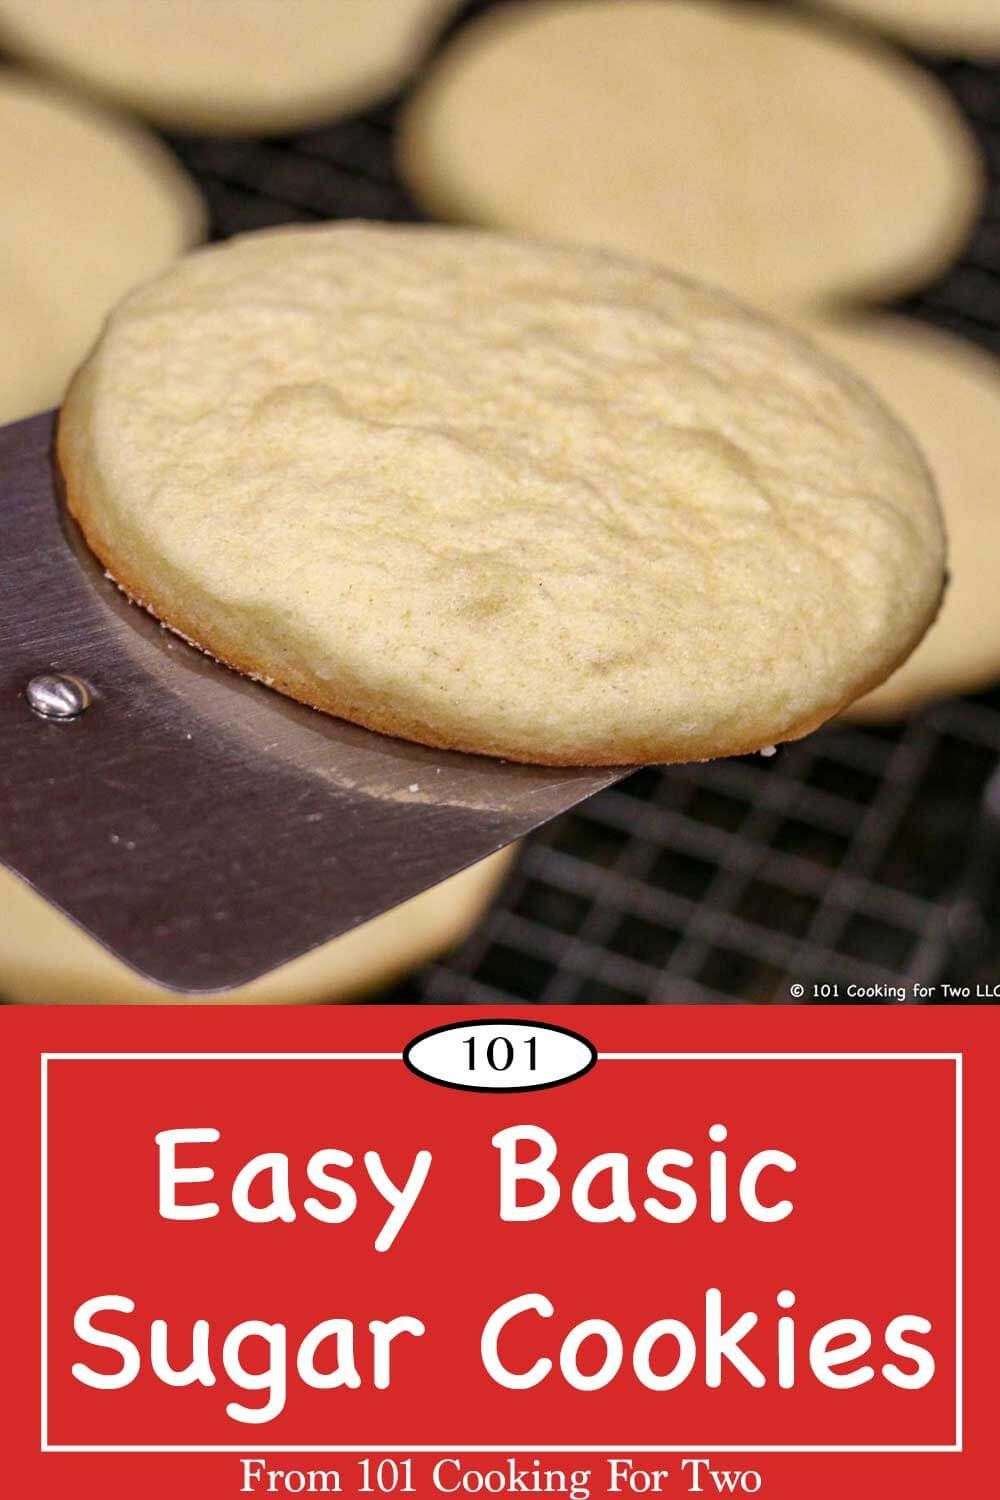 This easy basic sugar cookie recipe is a delicious classic that every home cook needs. Once you have the basic sugar cookie dough, the possibilities are endless for holiday treats. Just follow these simple step by step photo instructions.